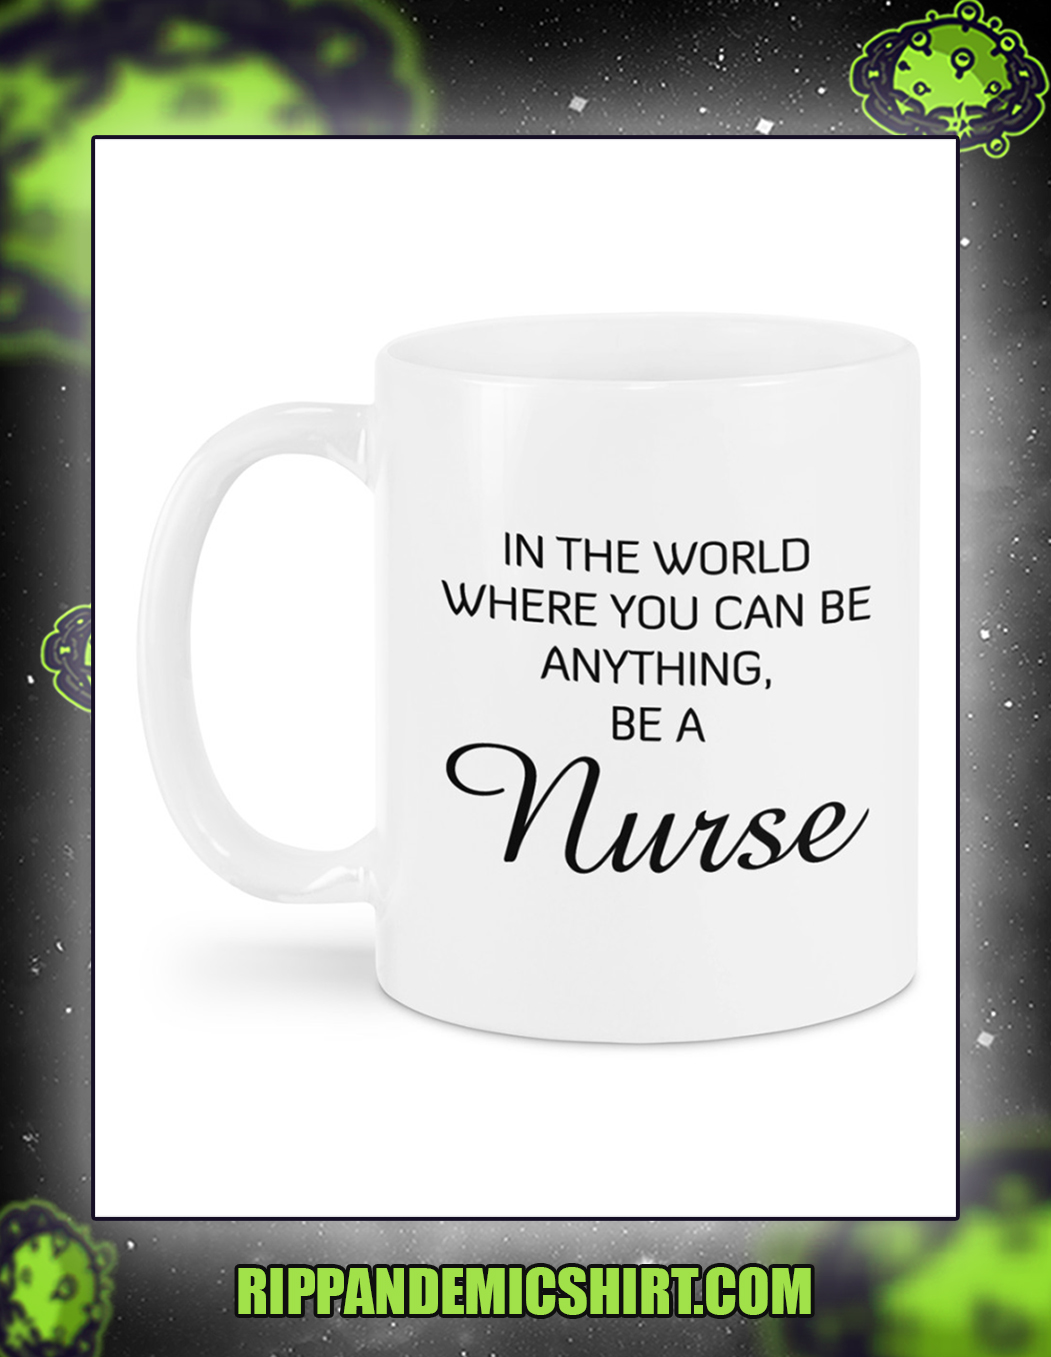 In a world where you can be anything be a nurse mug 1